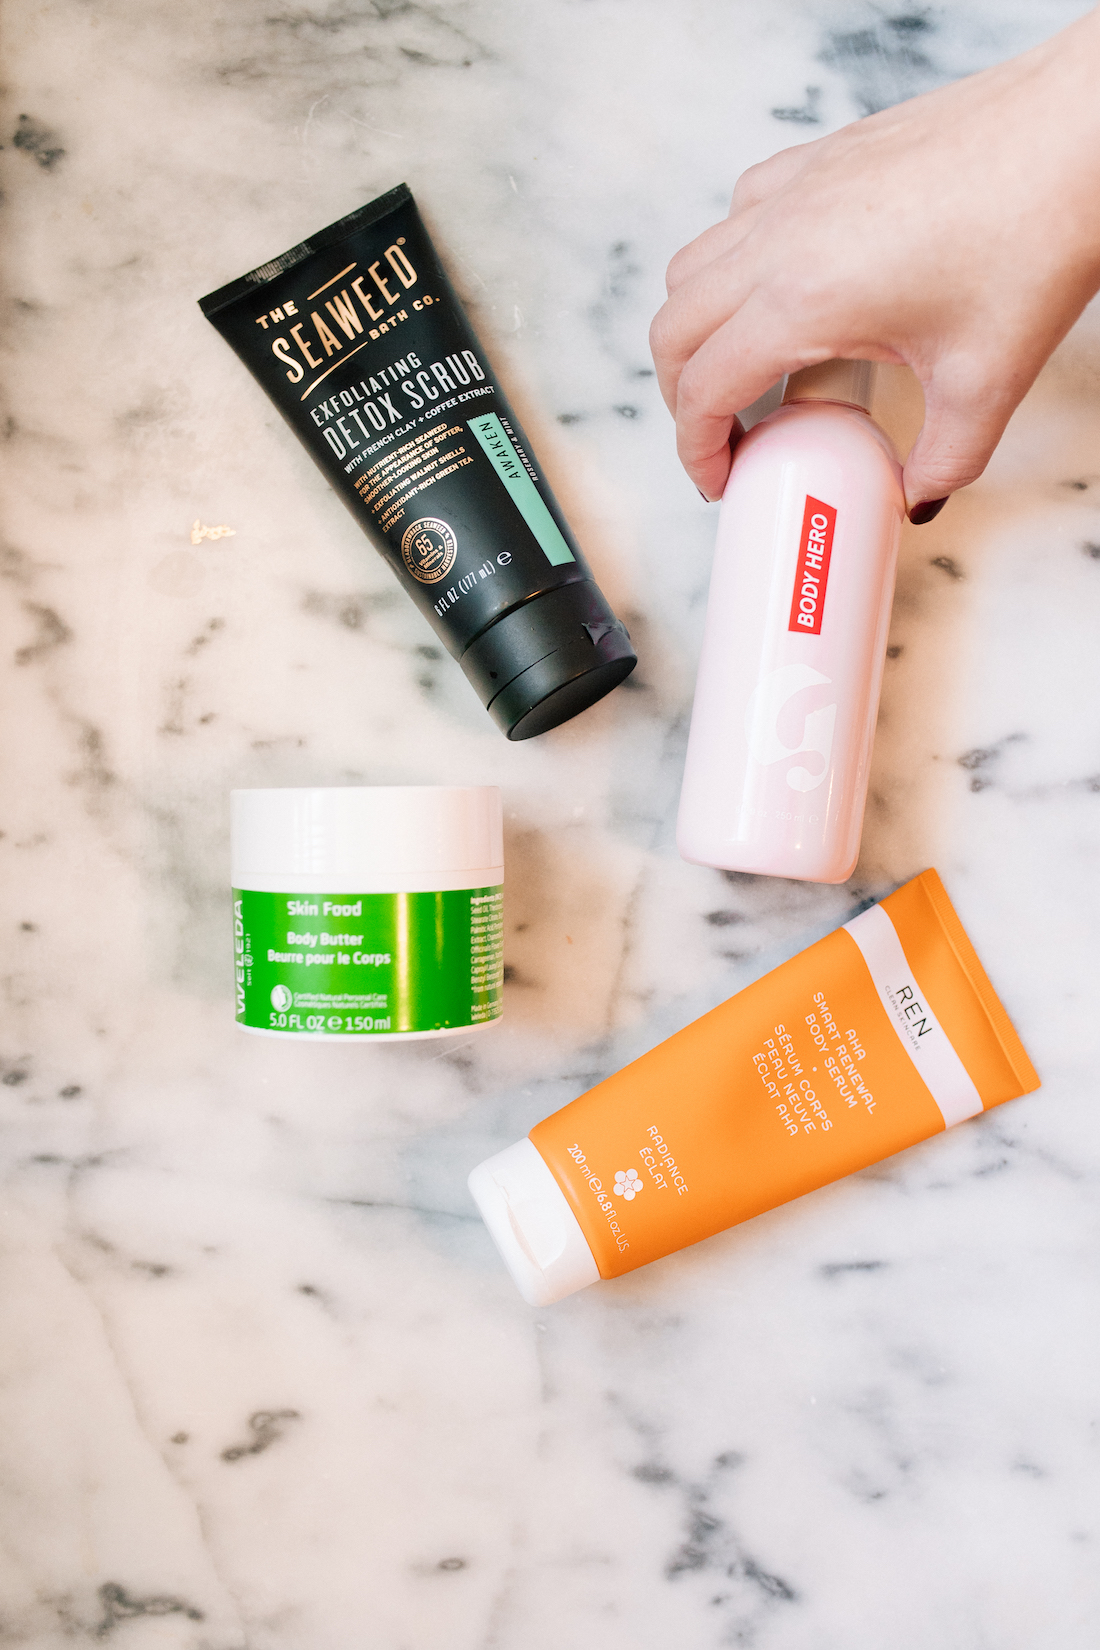 my favorite body products for dry skin | the best body wash, body scrub, body serum, and body butter! #beauty #skincare #beautyblogger #glossier | thestripe.com